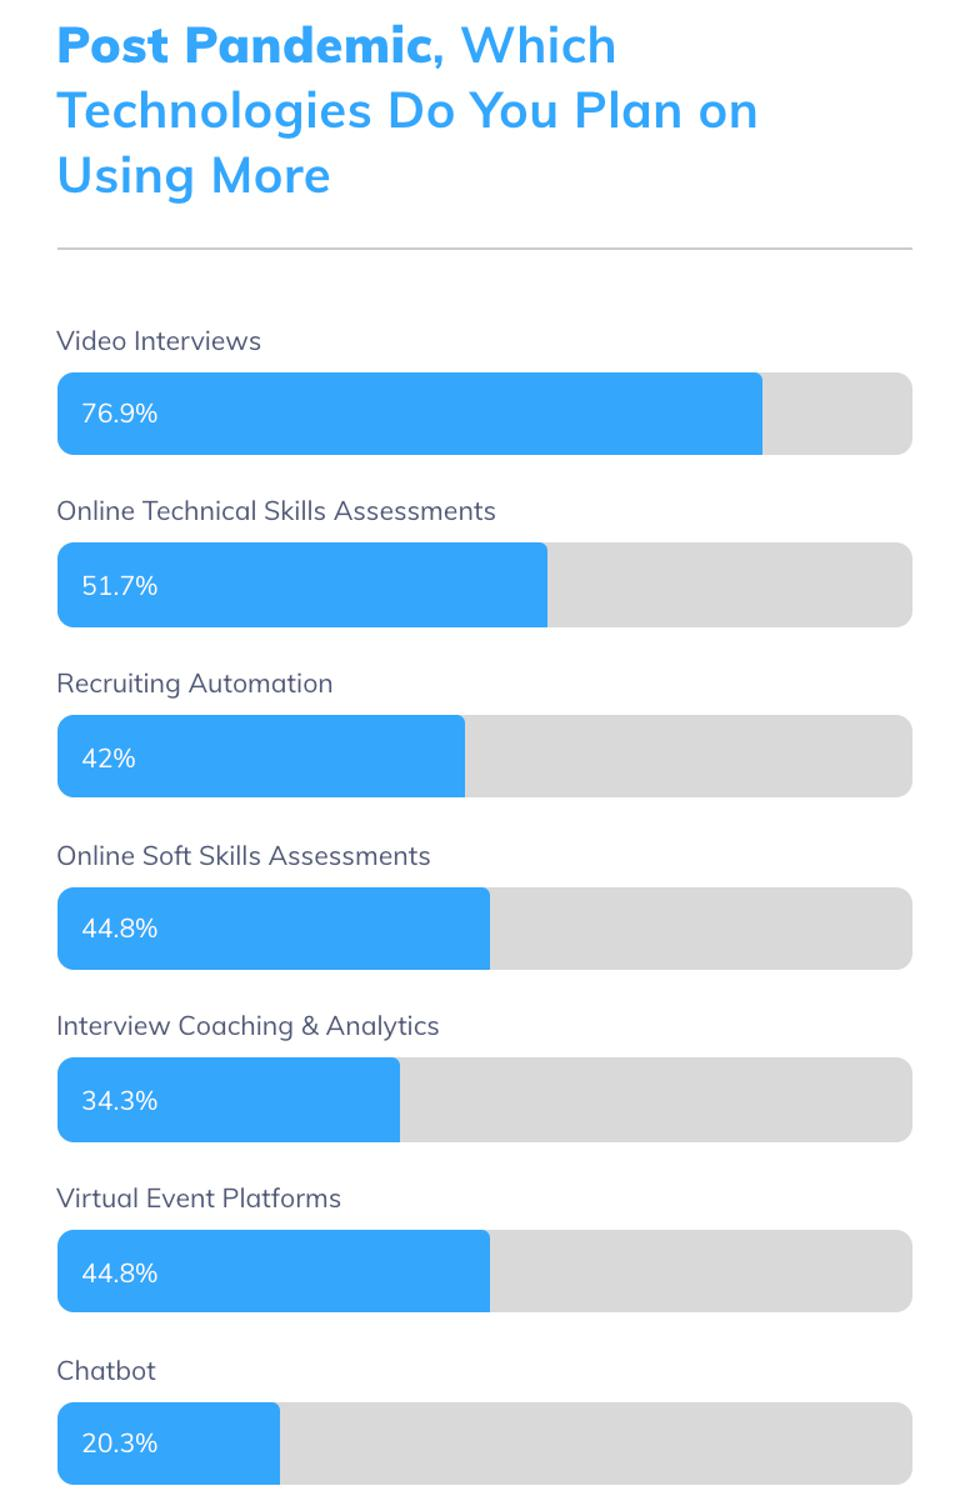 This graph shows the most used remote hiring tools for post-pandemic hiring